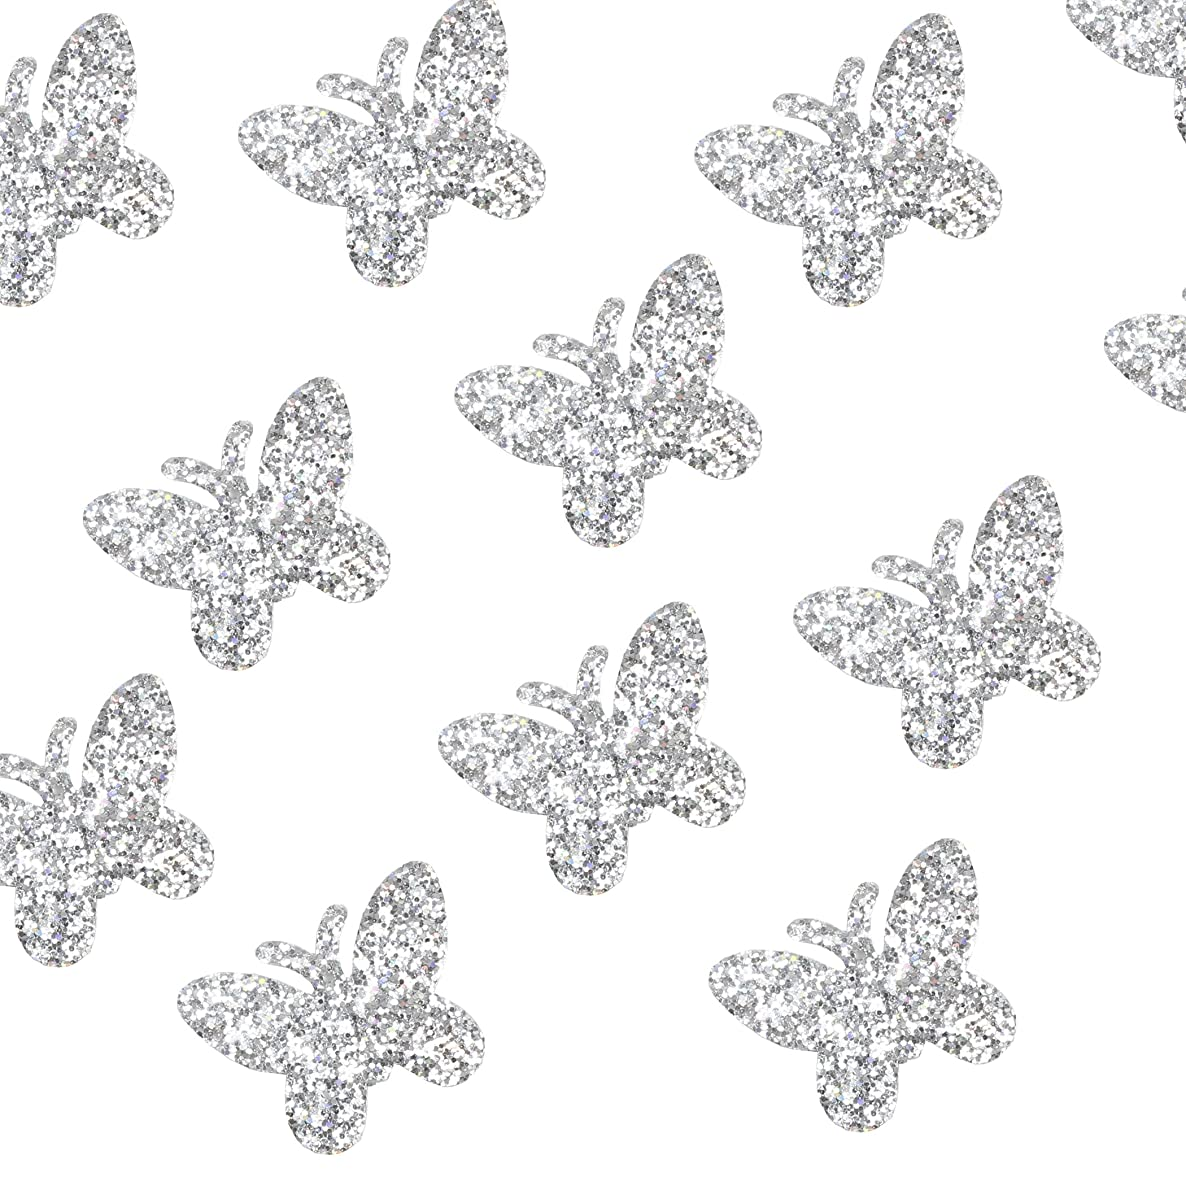 Felt Shapes - 100-Pack Butterfly Shaped Craft Felt Cutout Embellishment Decoration, Silver Glitter Sequins, 0.8 x 0.8 inches